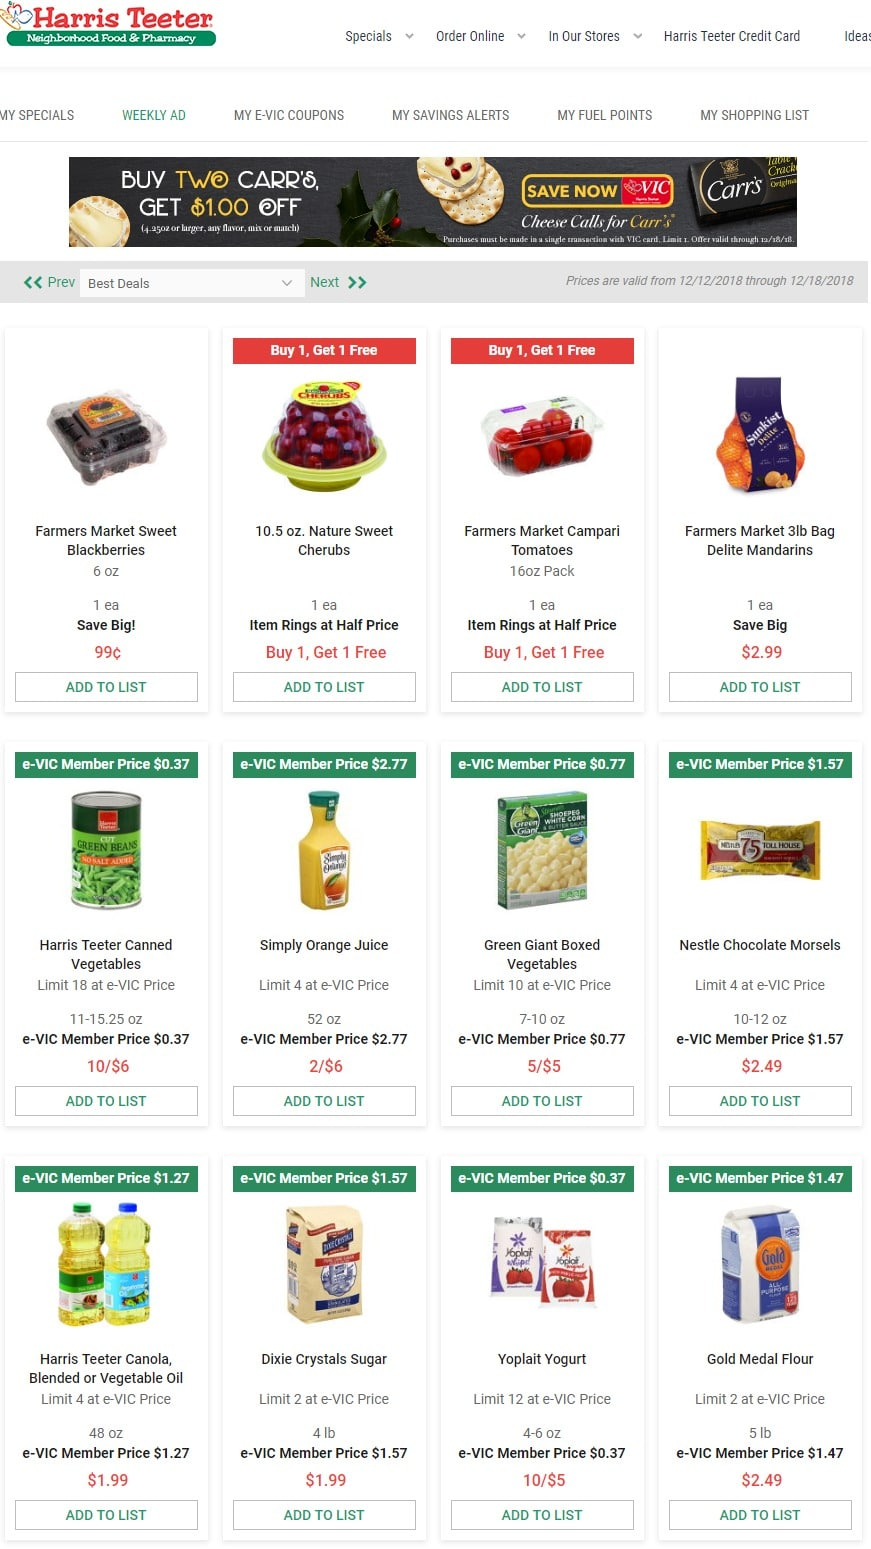 Harris Teeter Weekly Specials December 12 – December 18, 2018